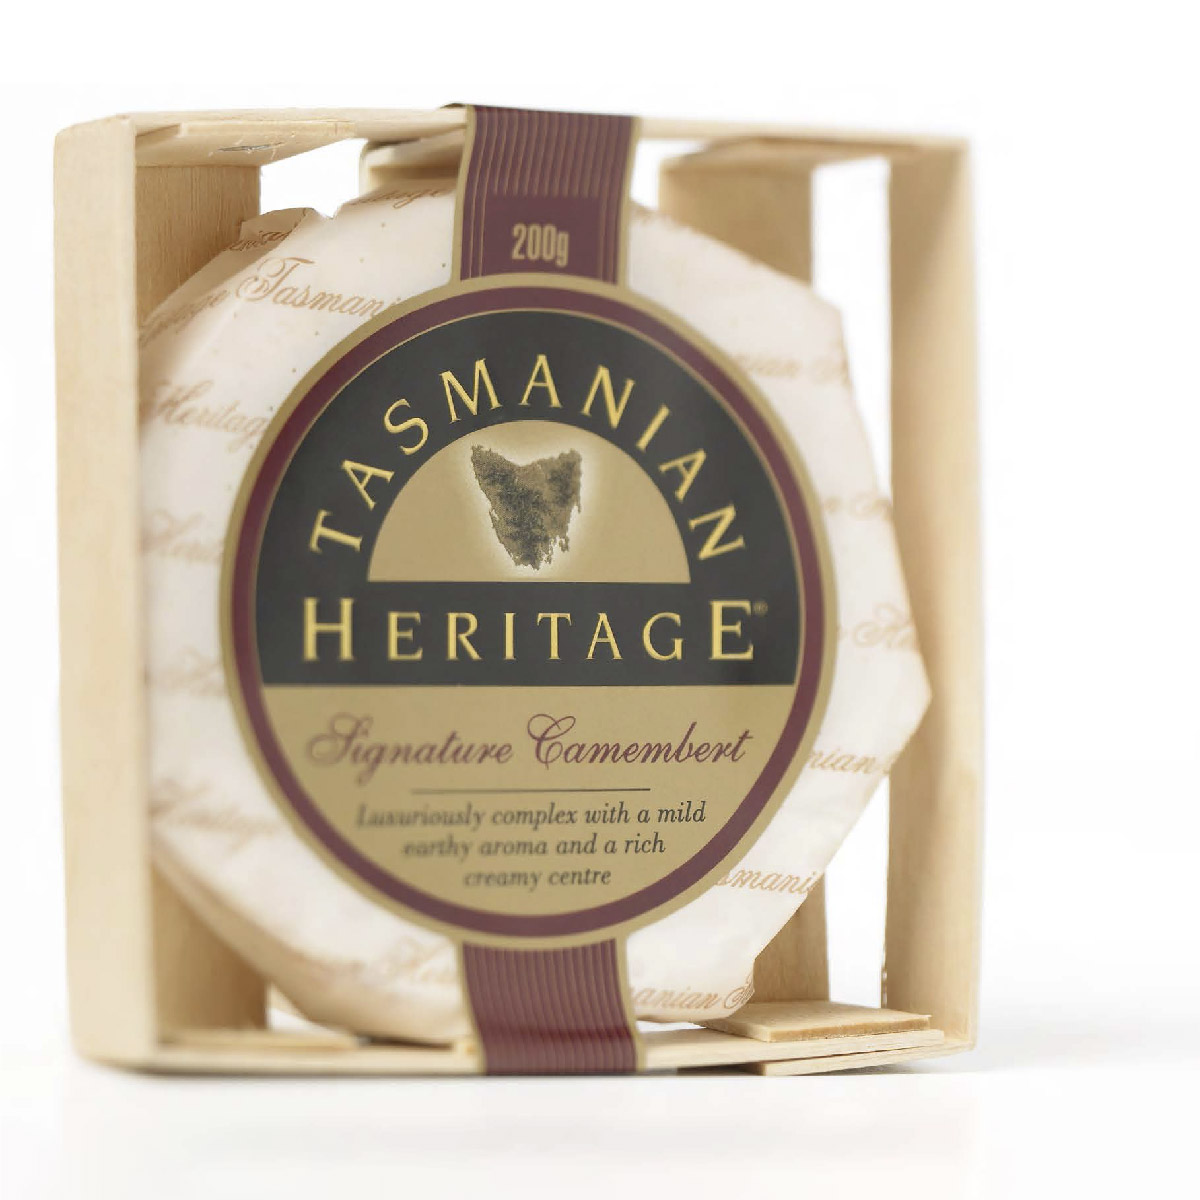 Tasmanian Heritage Cheese Packaging Design